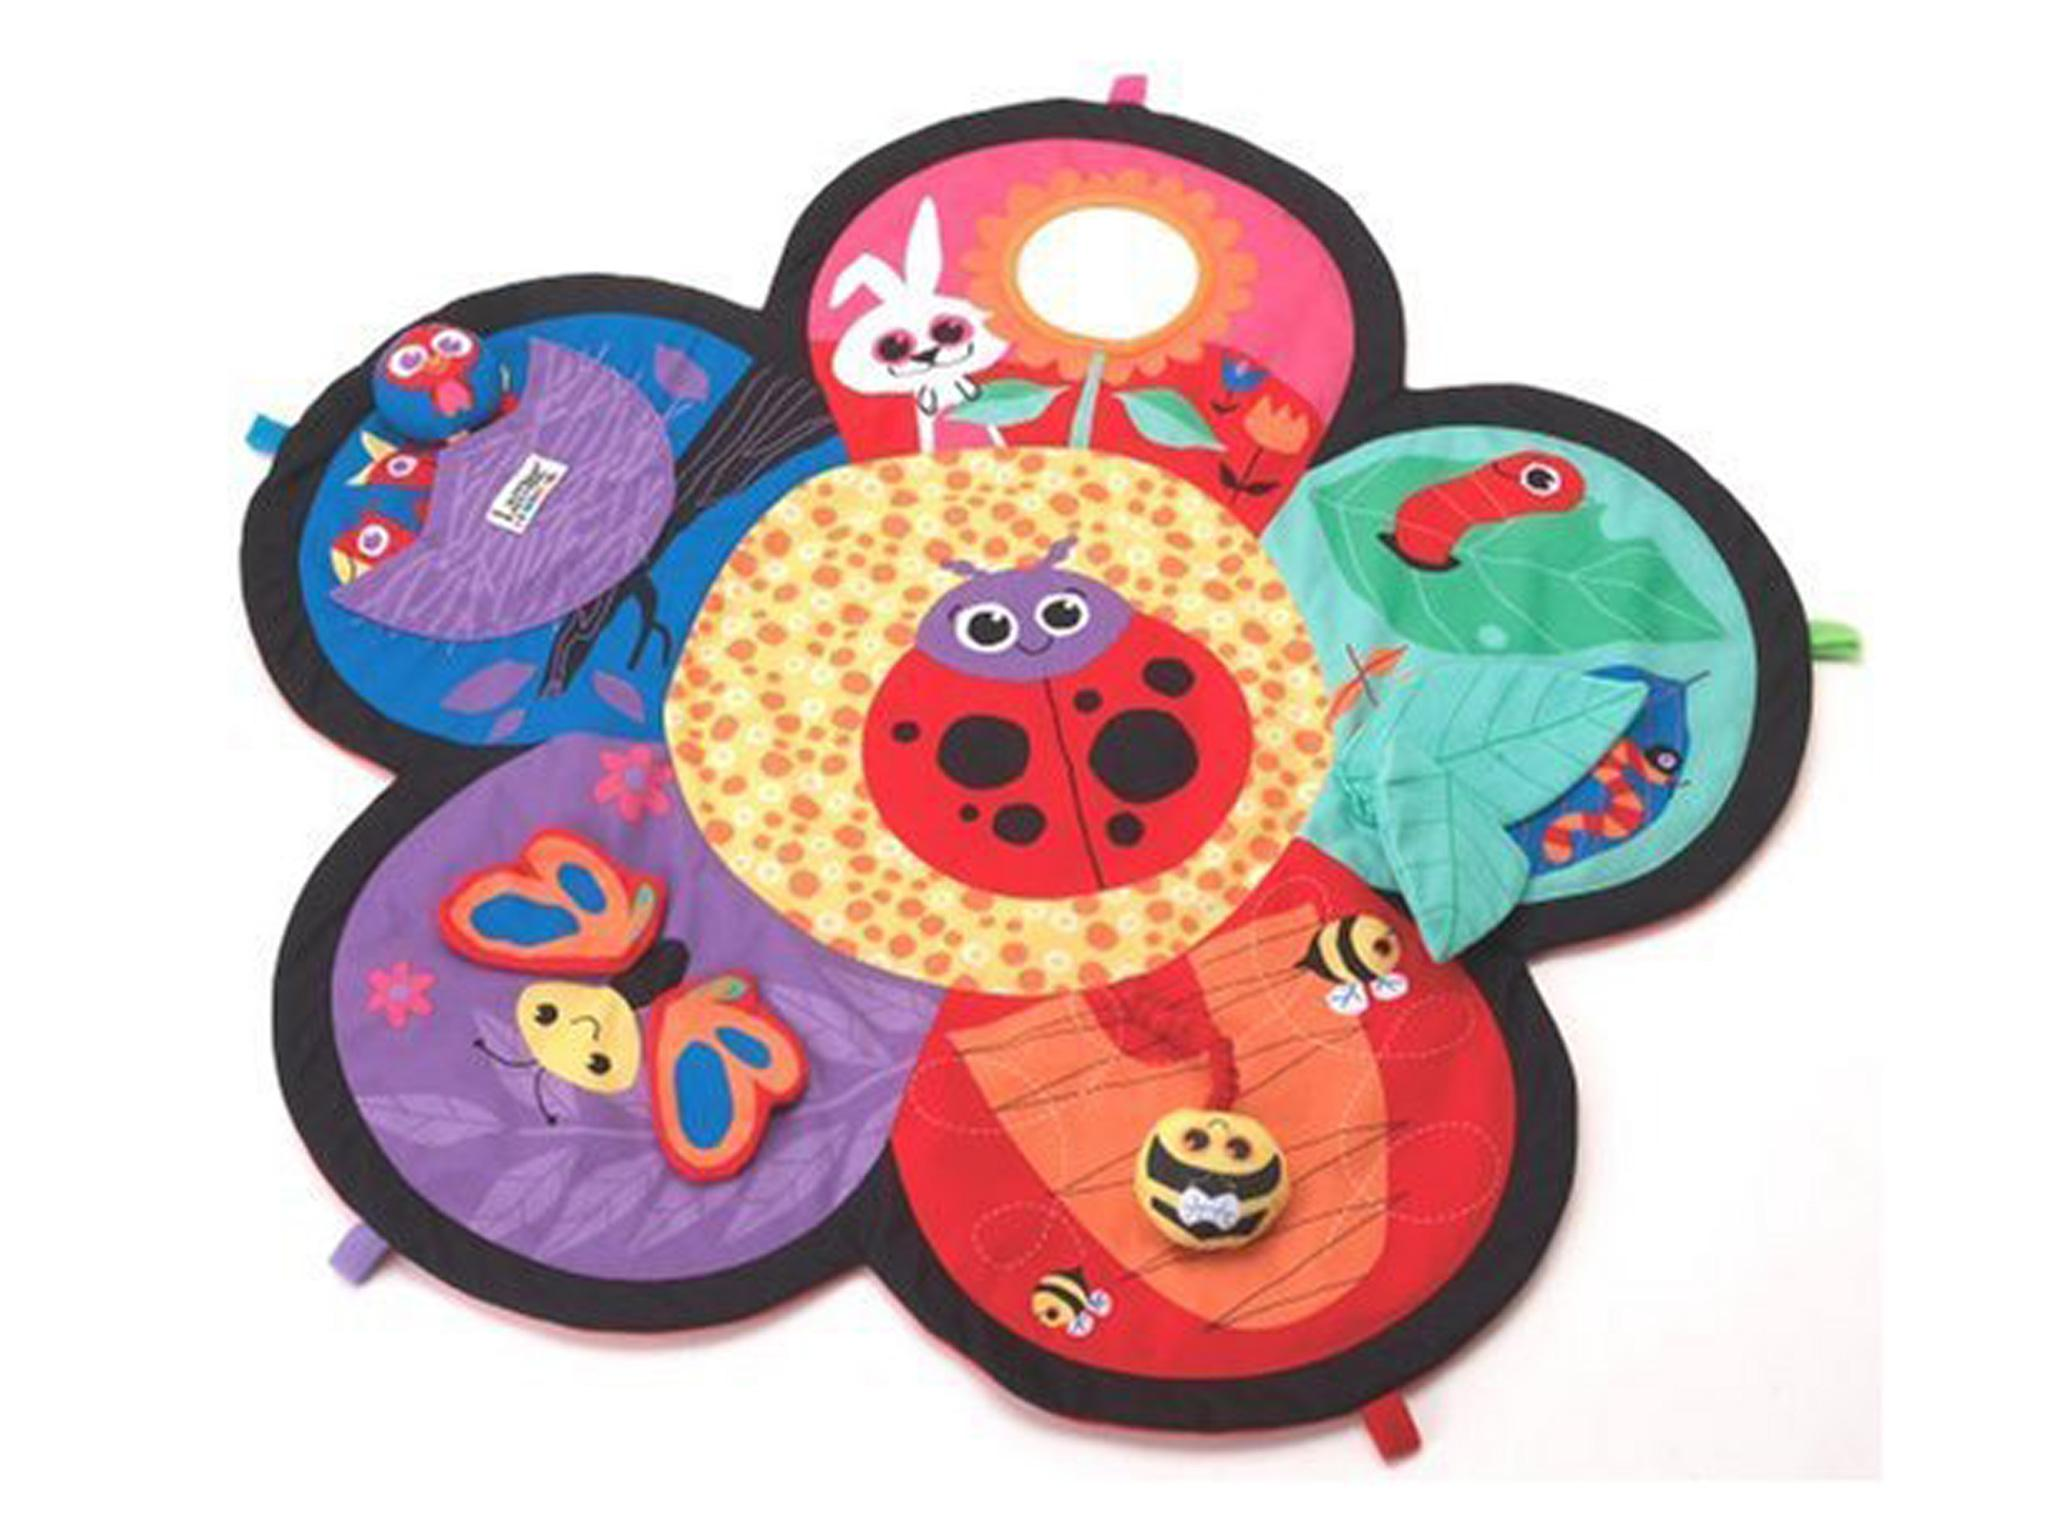 mat best baby at shop toxin activity educational price safe playmats durable sided toys waterproof kids double non buy gym playing